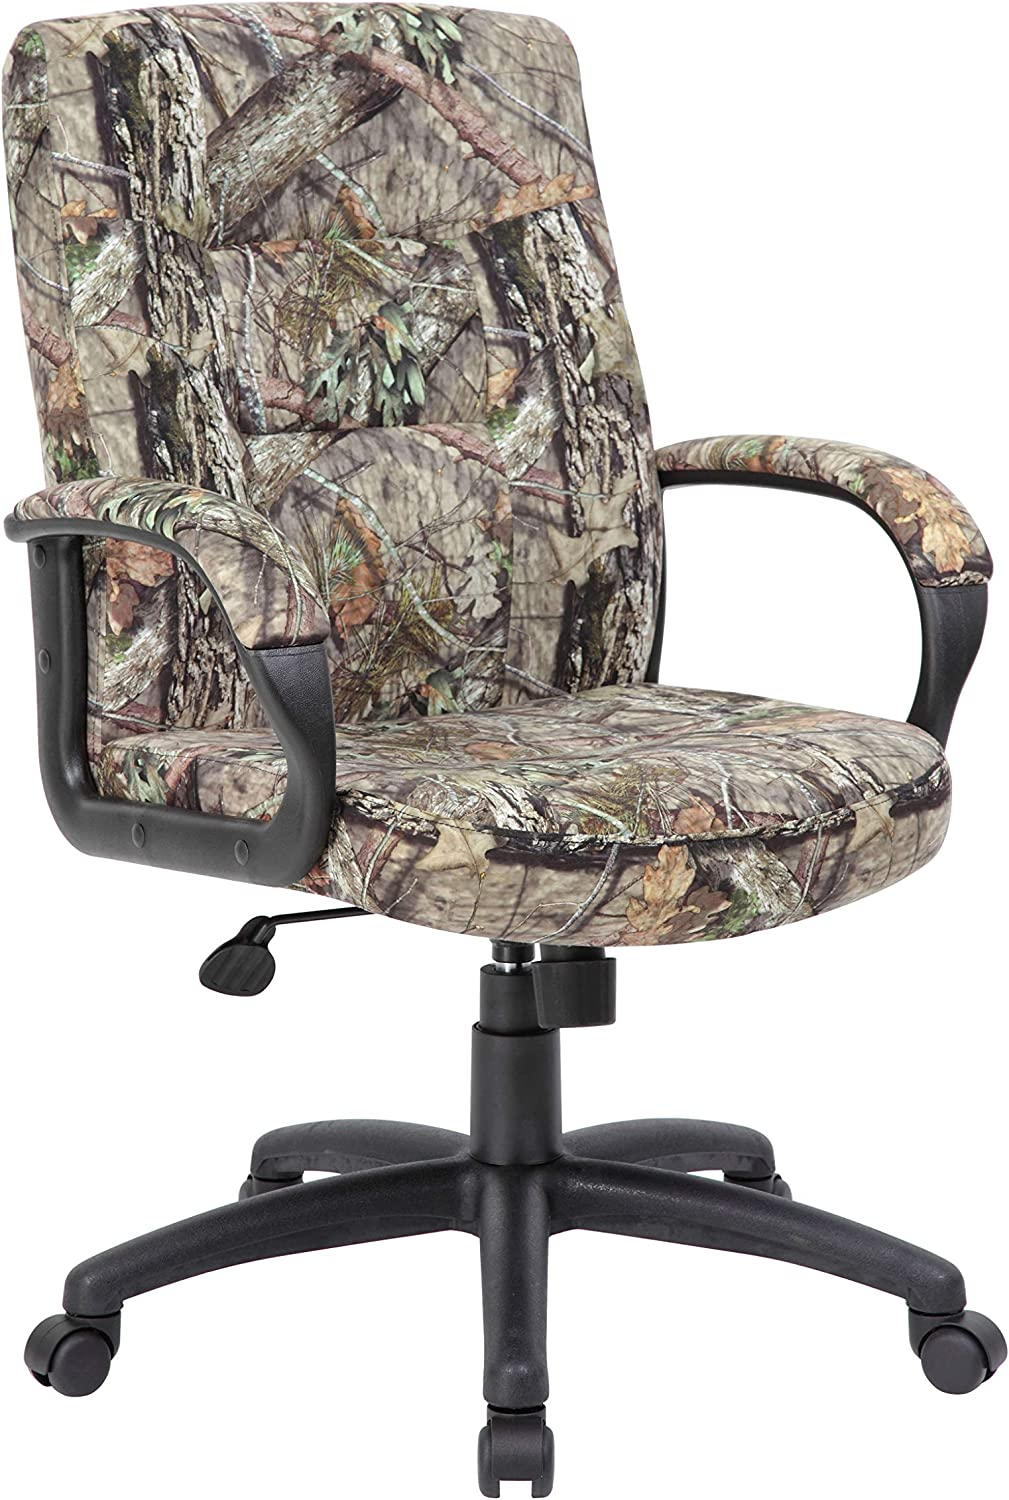 Boss Office Products Mossy Oak Break-Up Country Executive Mid-Back Chair, Camo